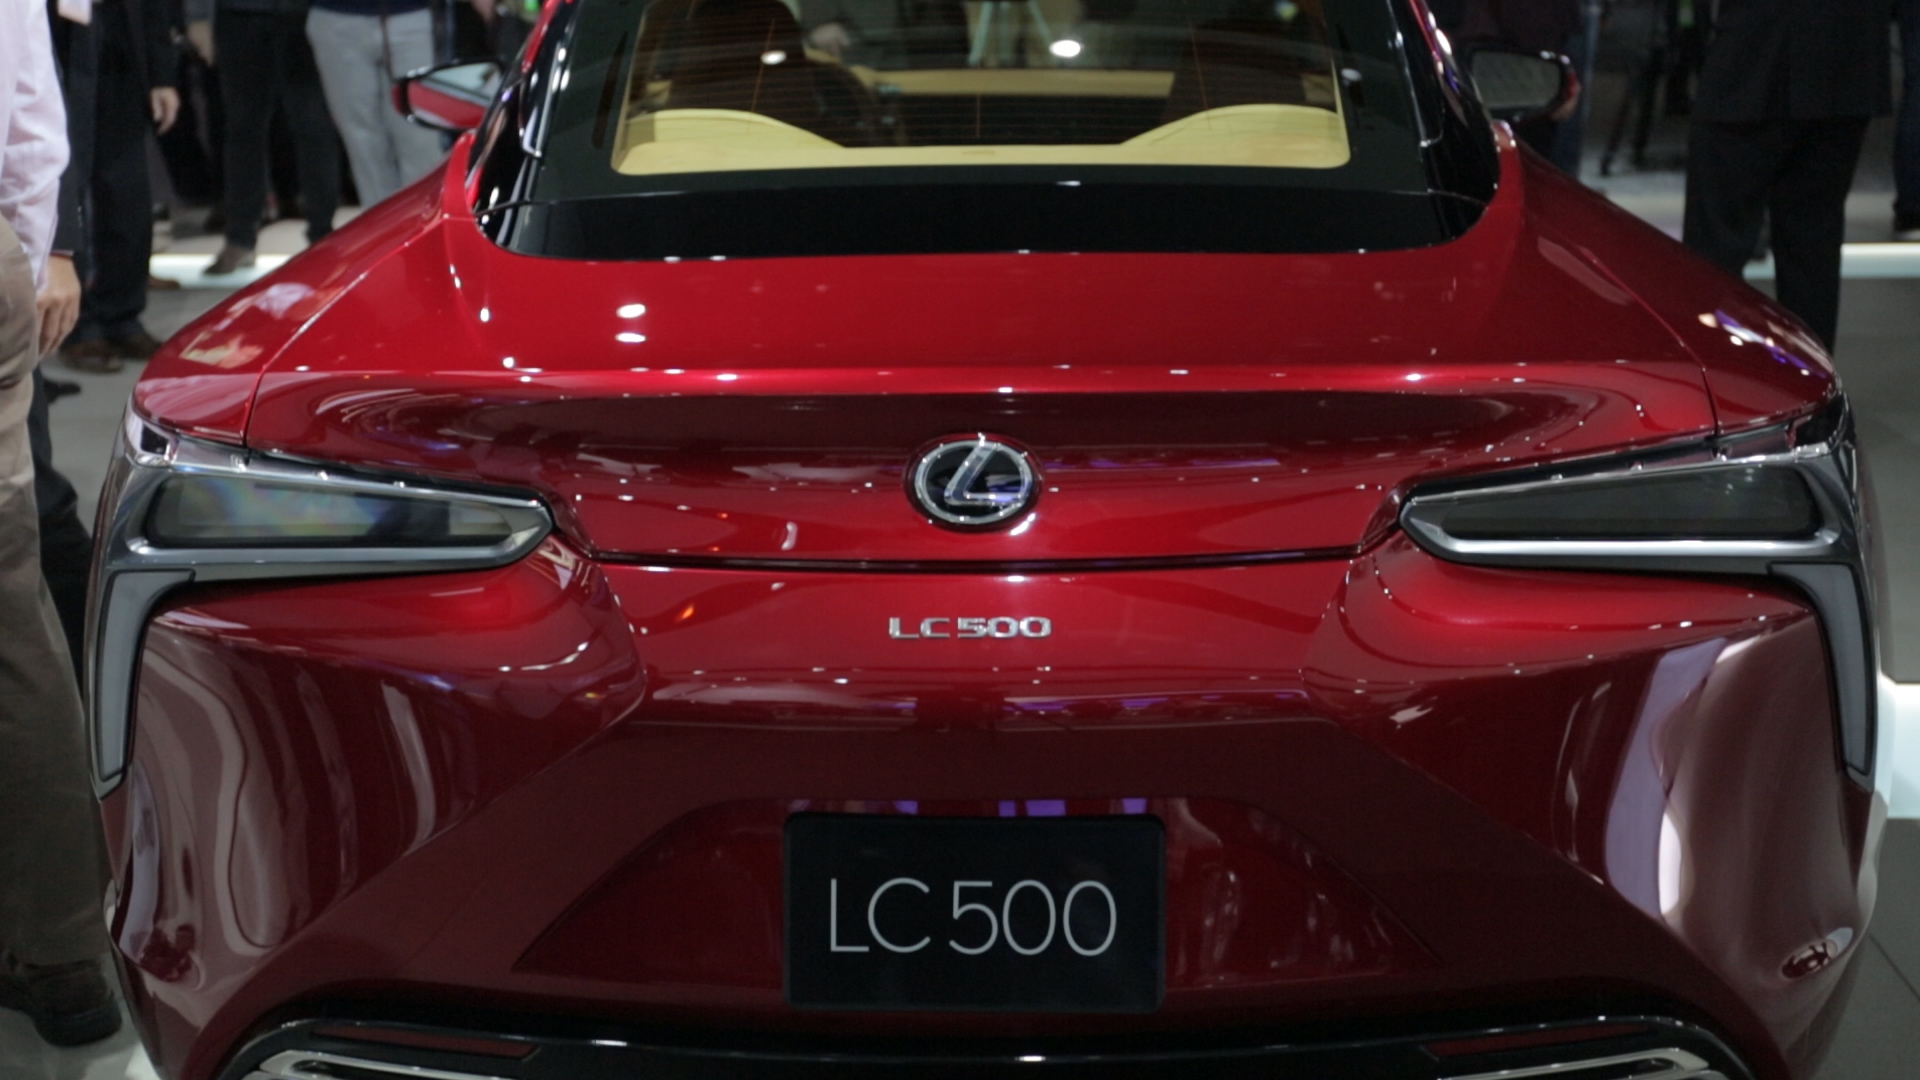 Video: Lexus LC 500 brings concept to reality in Detroit